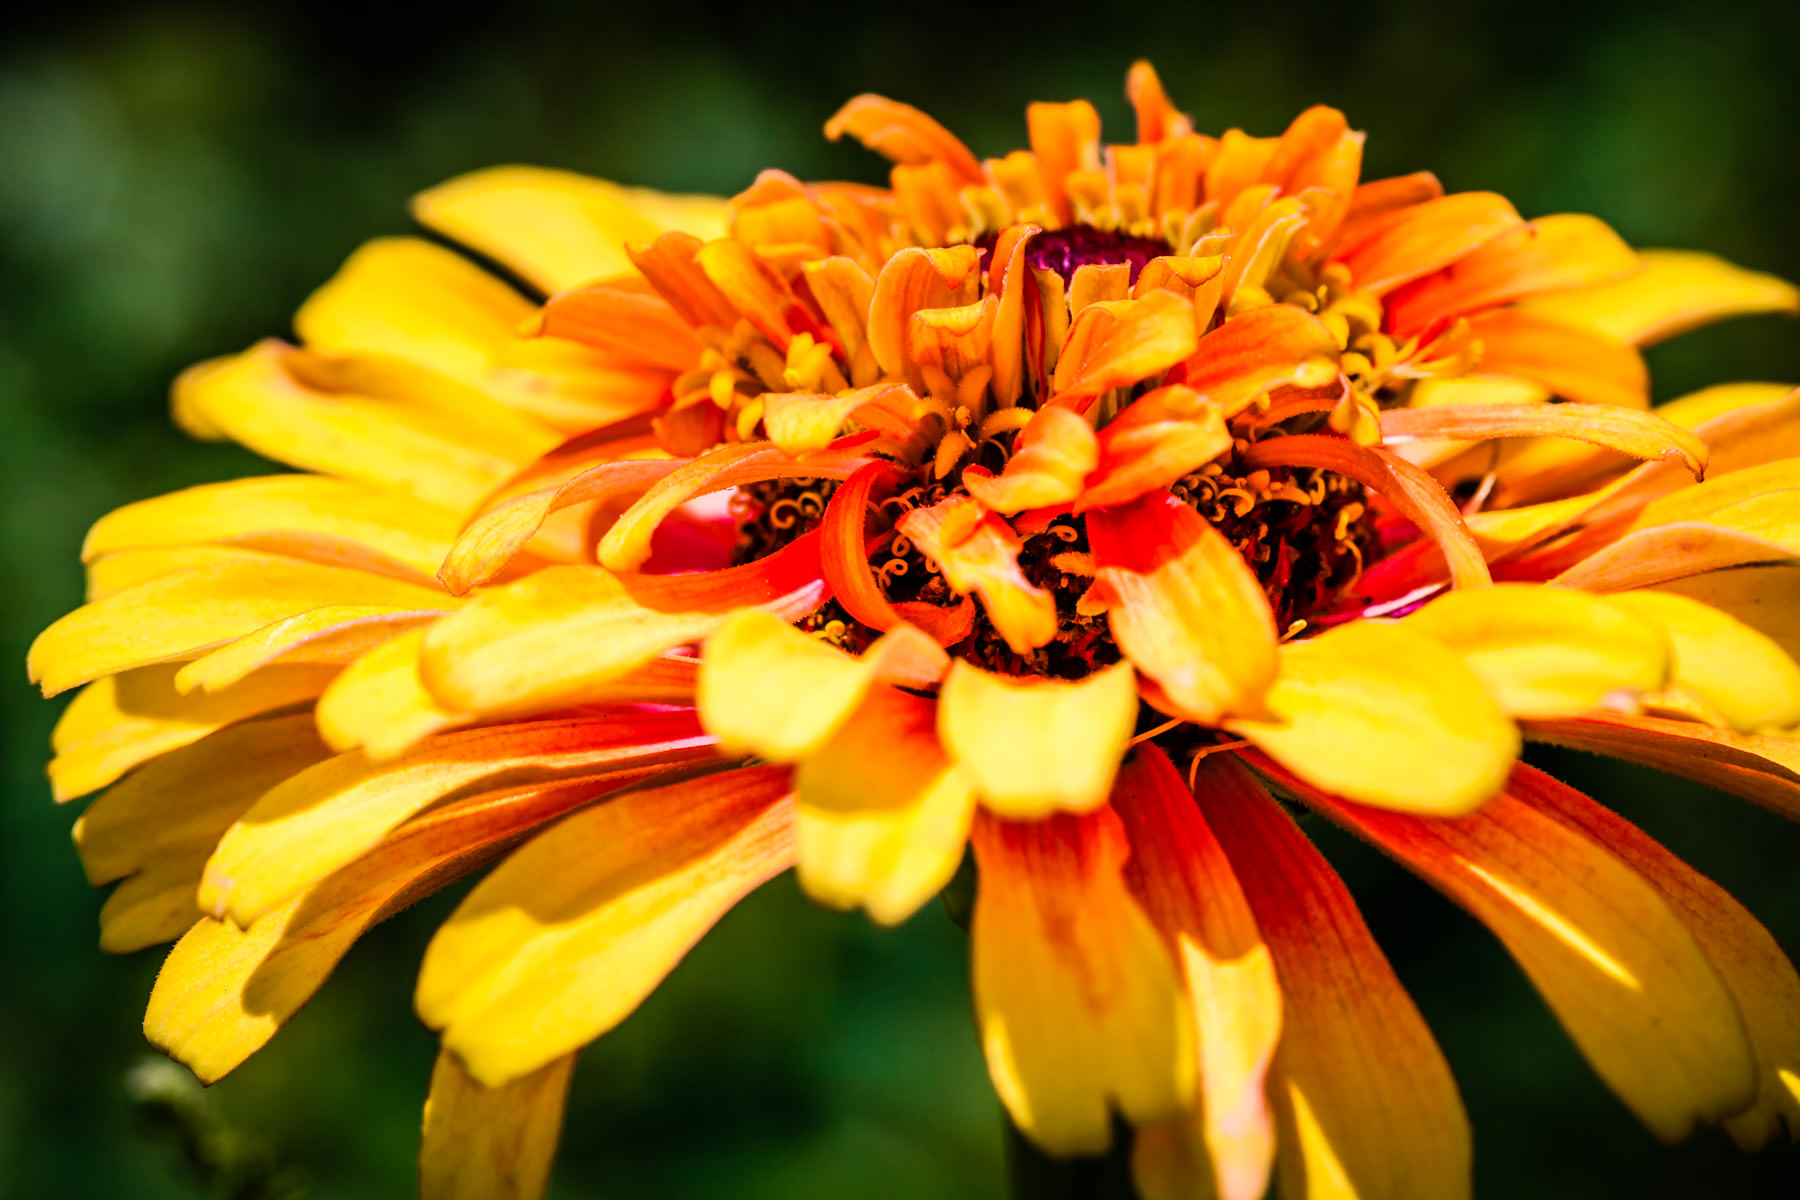 This yellow, orange and red flower was shot at the Holistic Garden at Texas A&M University in College Station, Texas.